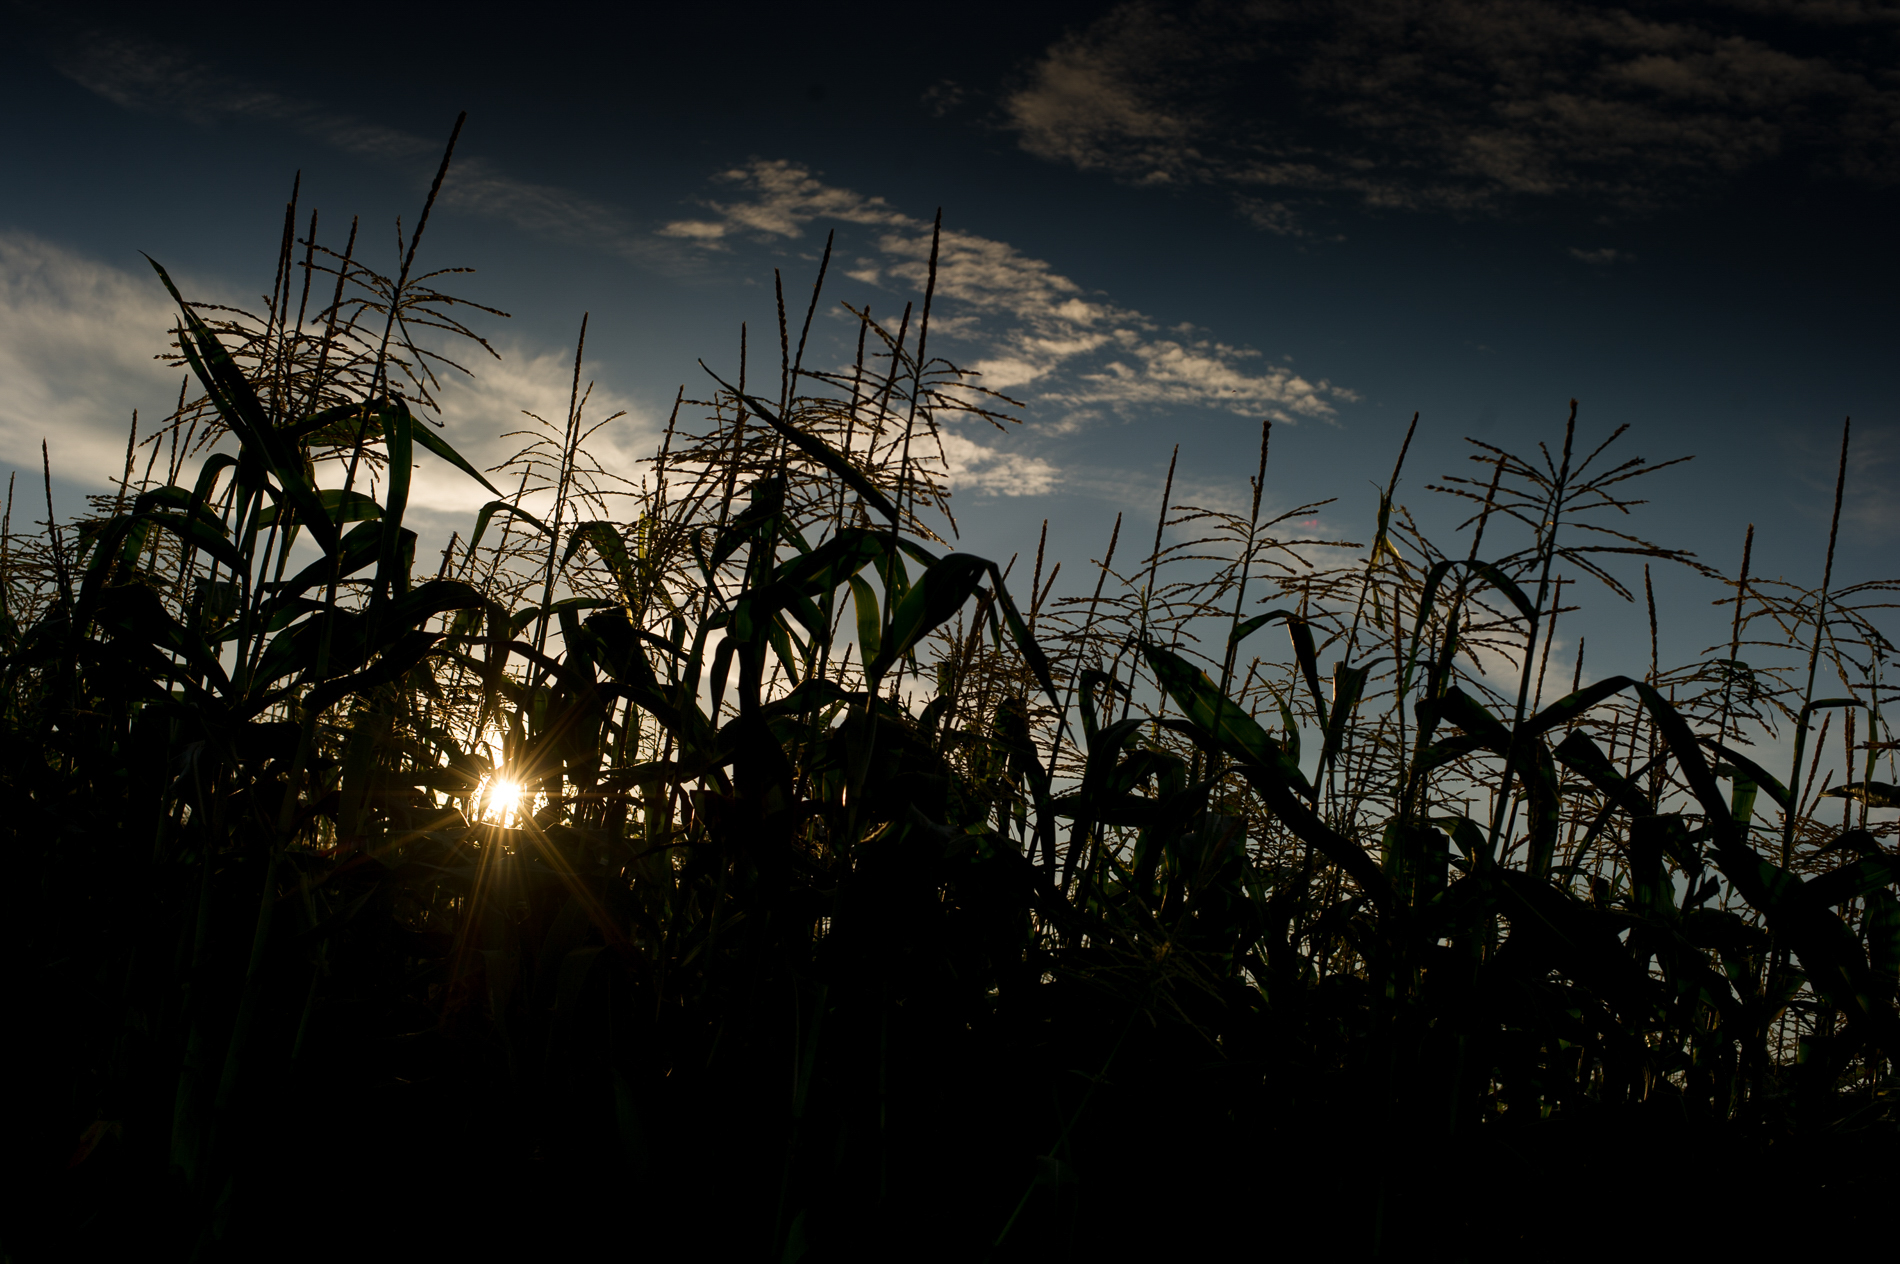 Corn at Sunset